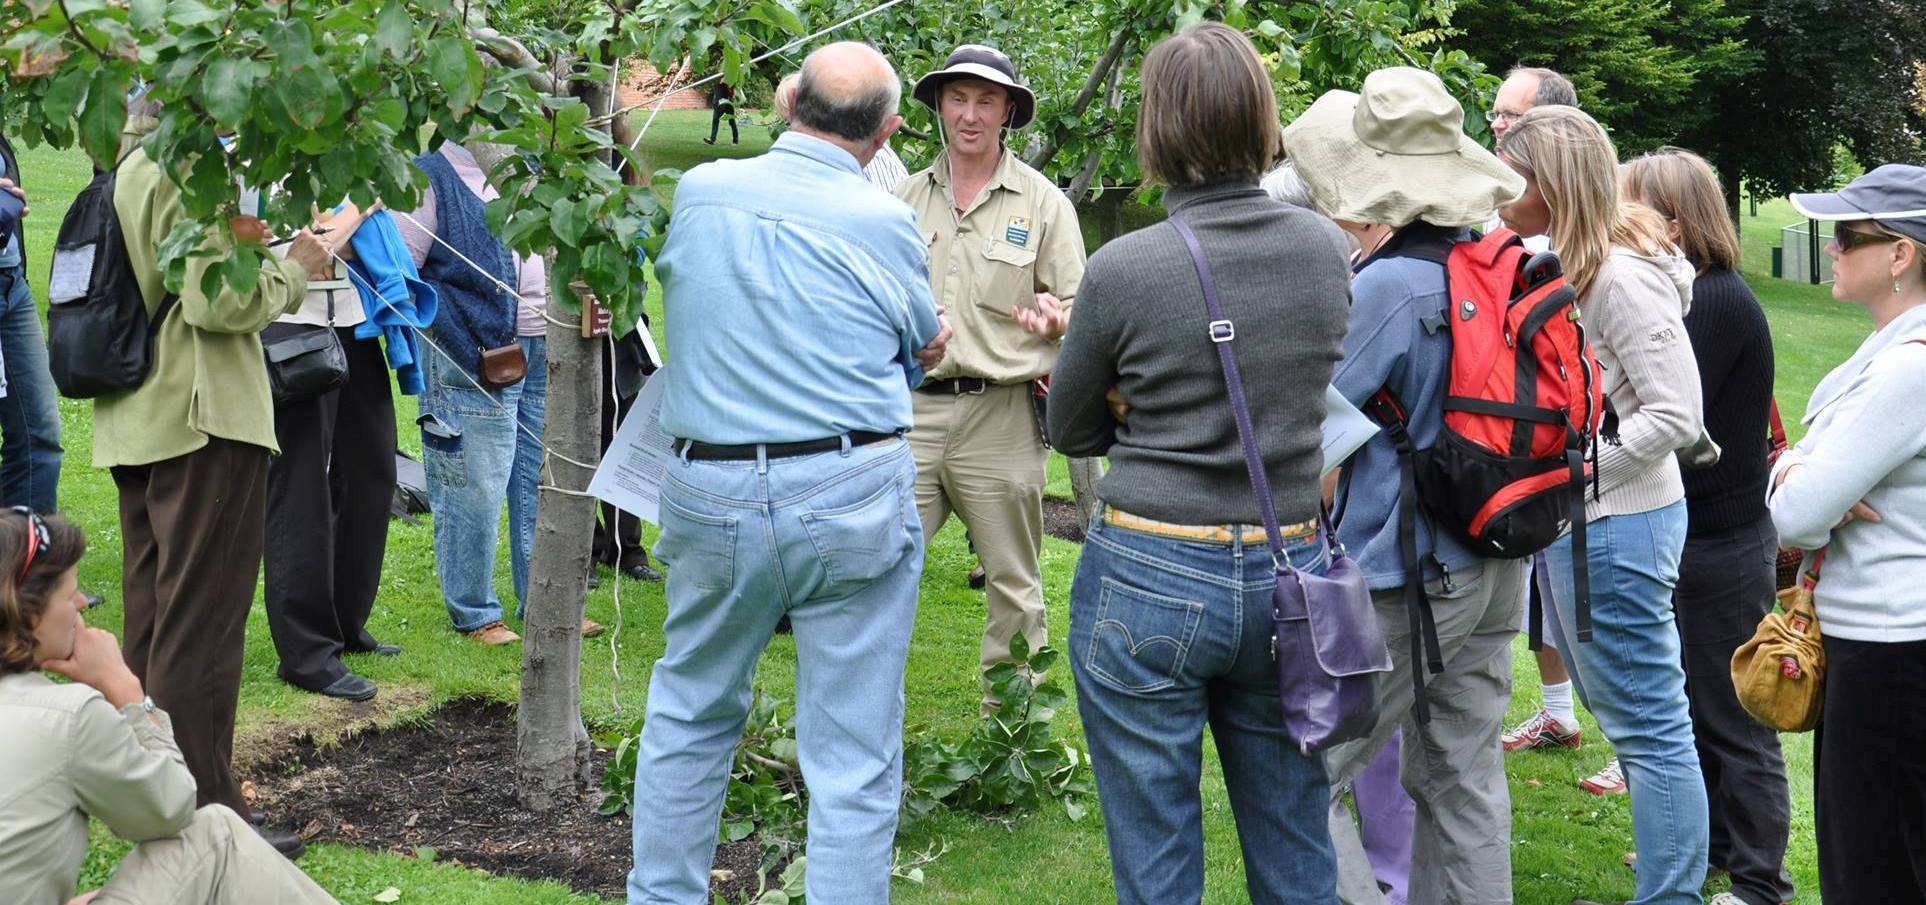 Gardens presenter talking to a group of day students around and apple tree